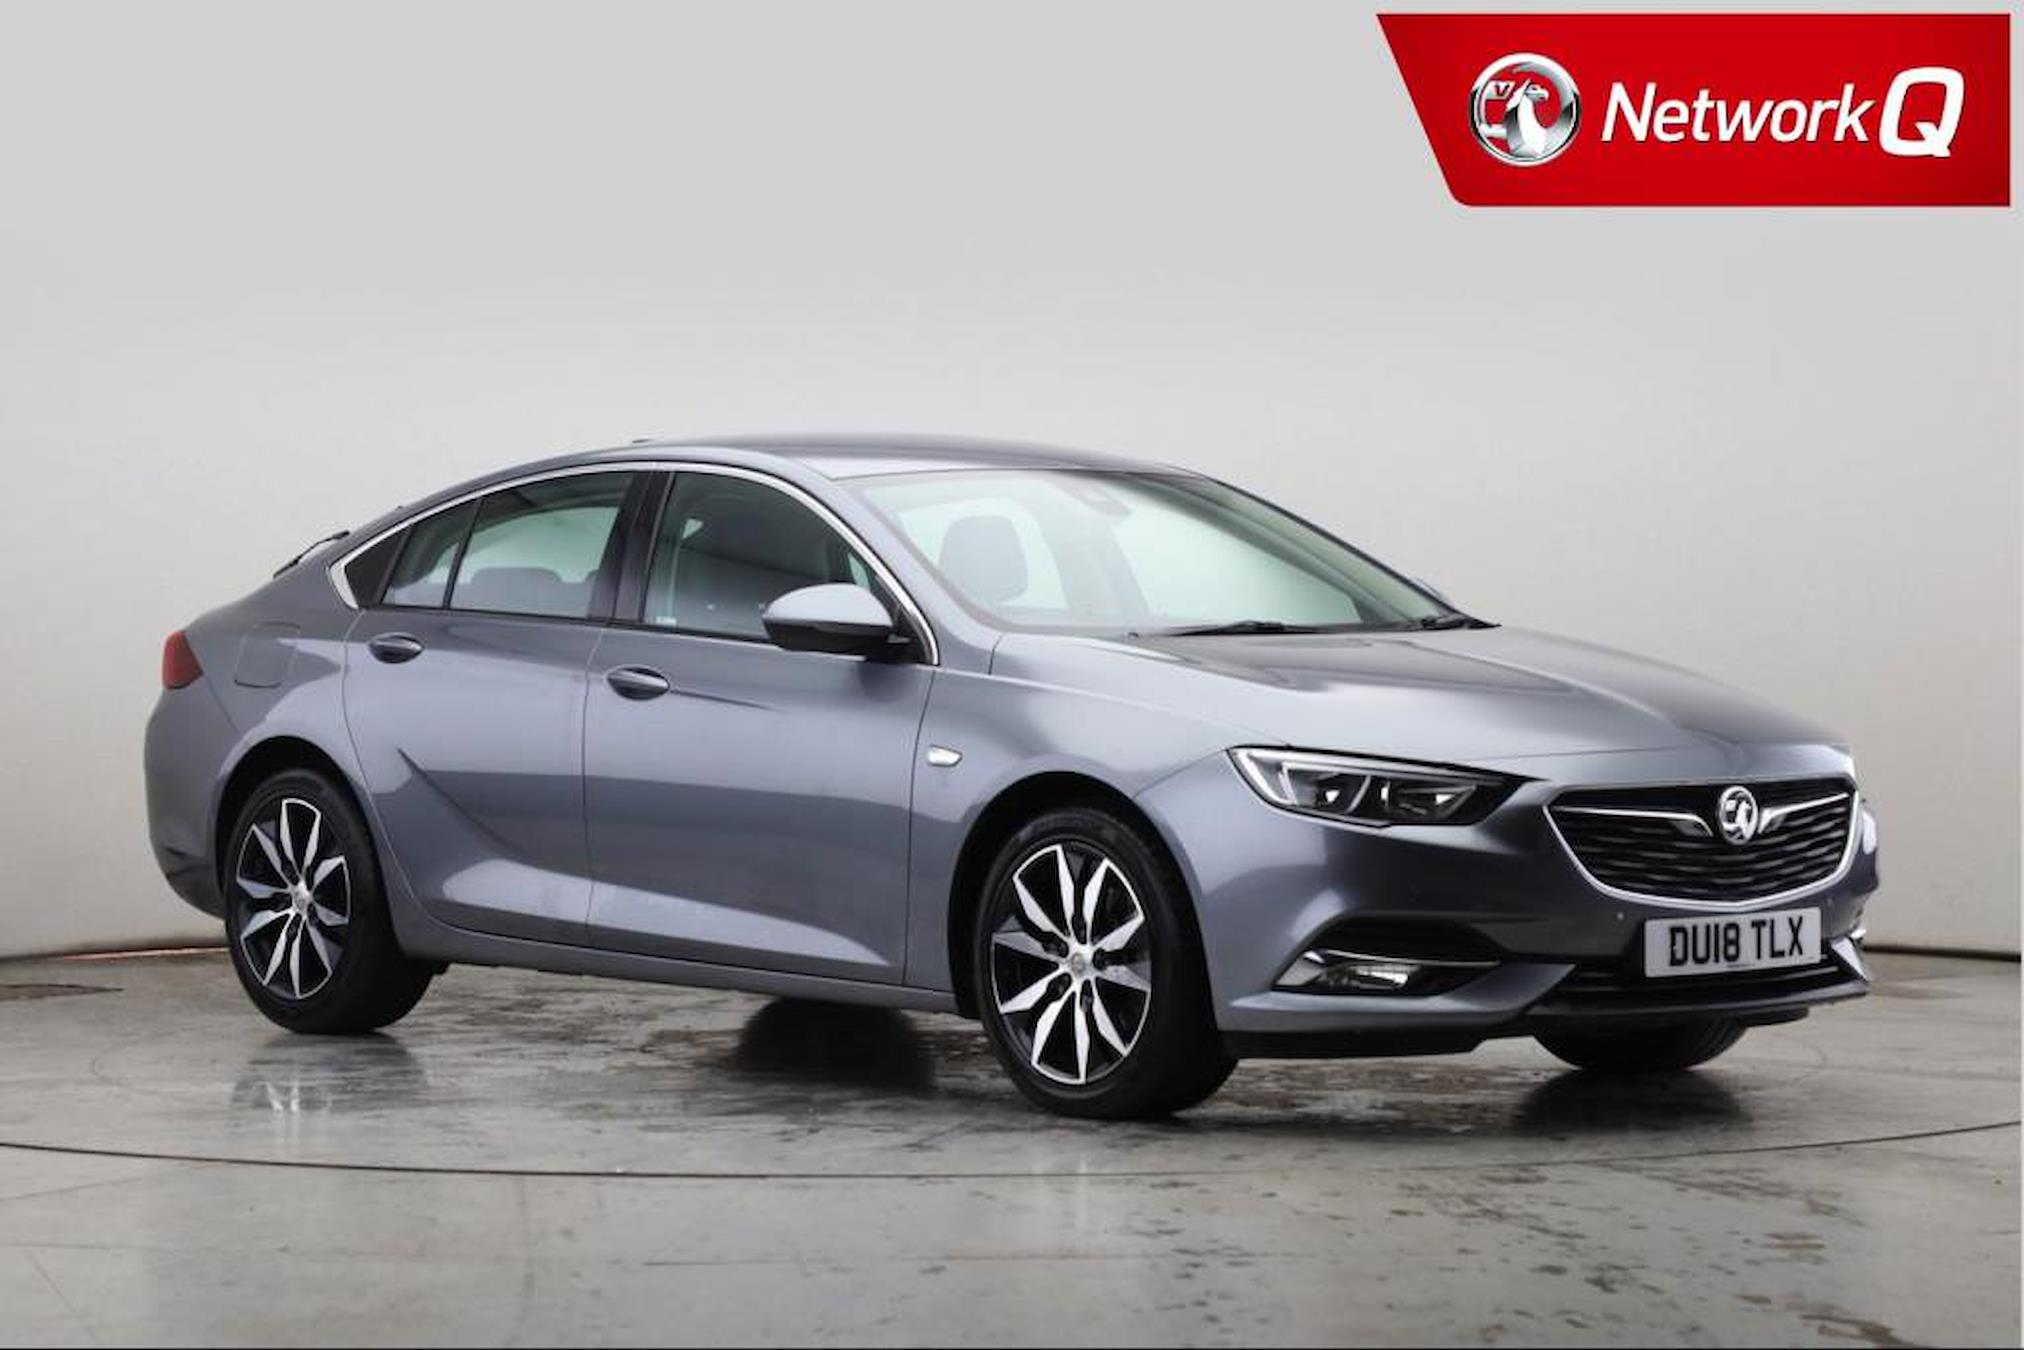 Used INSIGNIA VAUXHALL 2 0 Turbo D Tech Line Nav 5Dr 2018 | Lookers